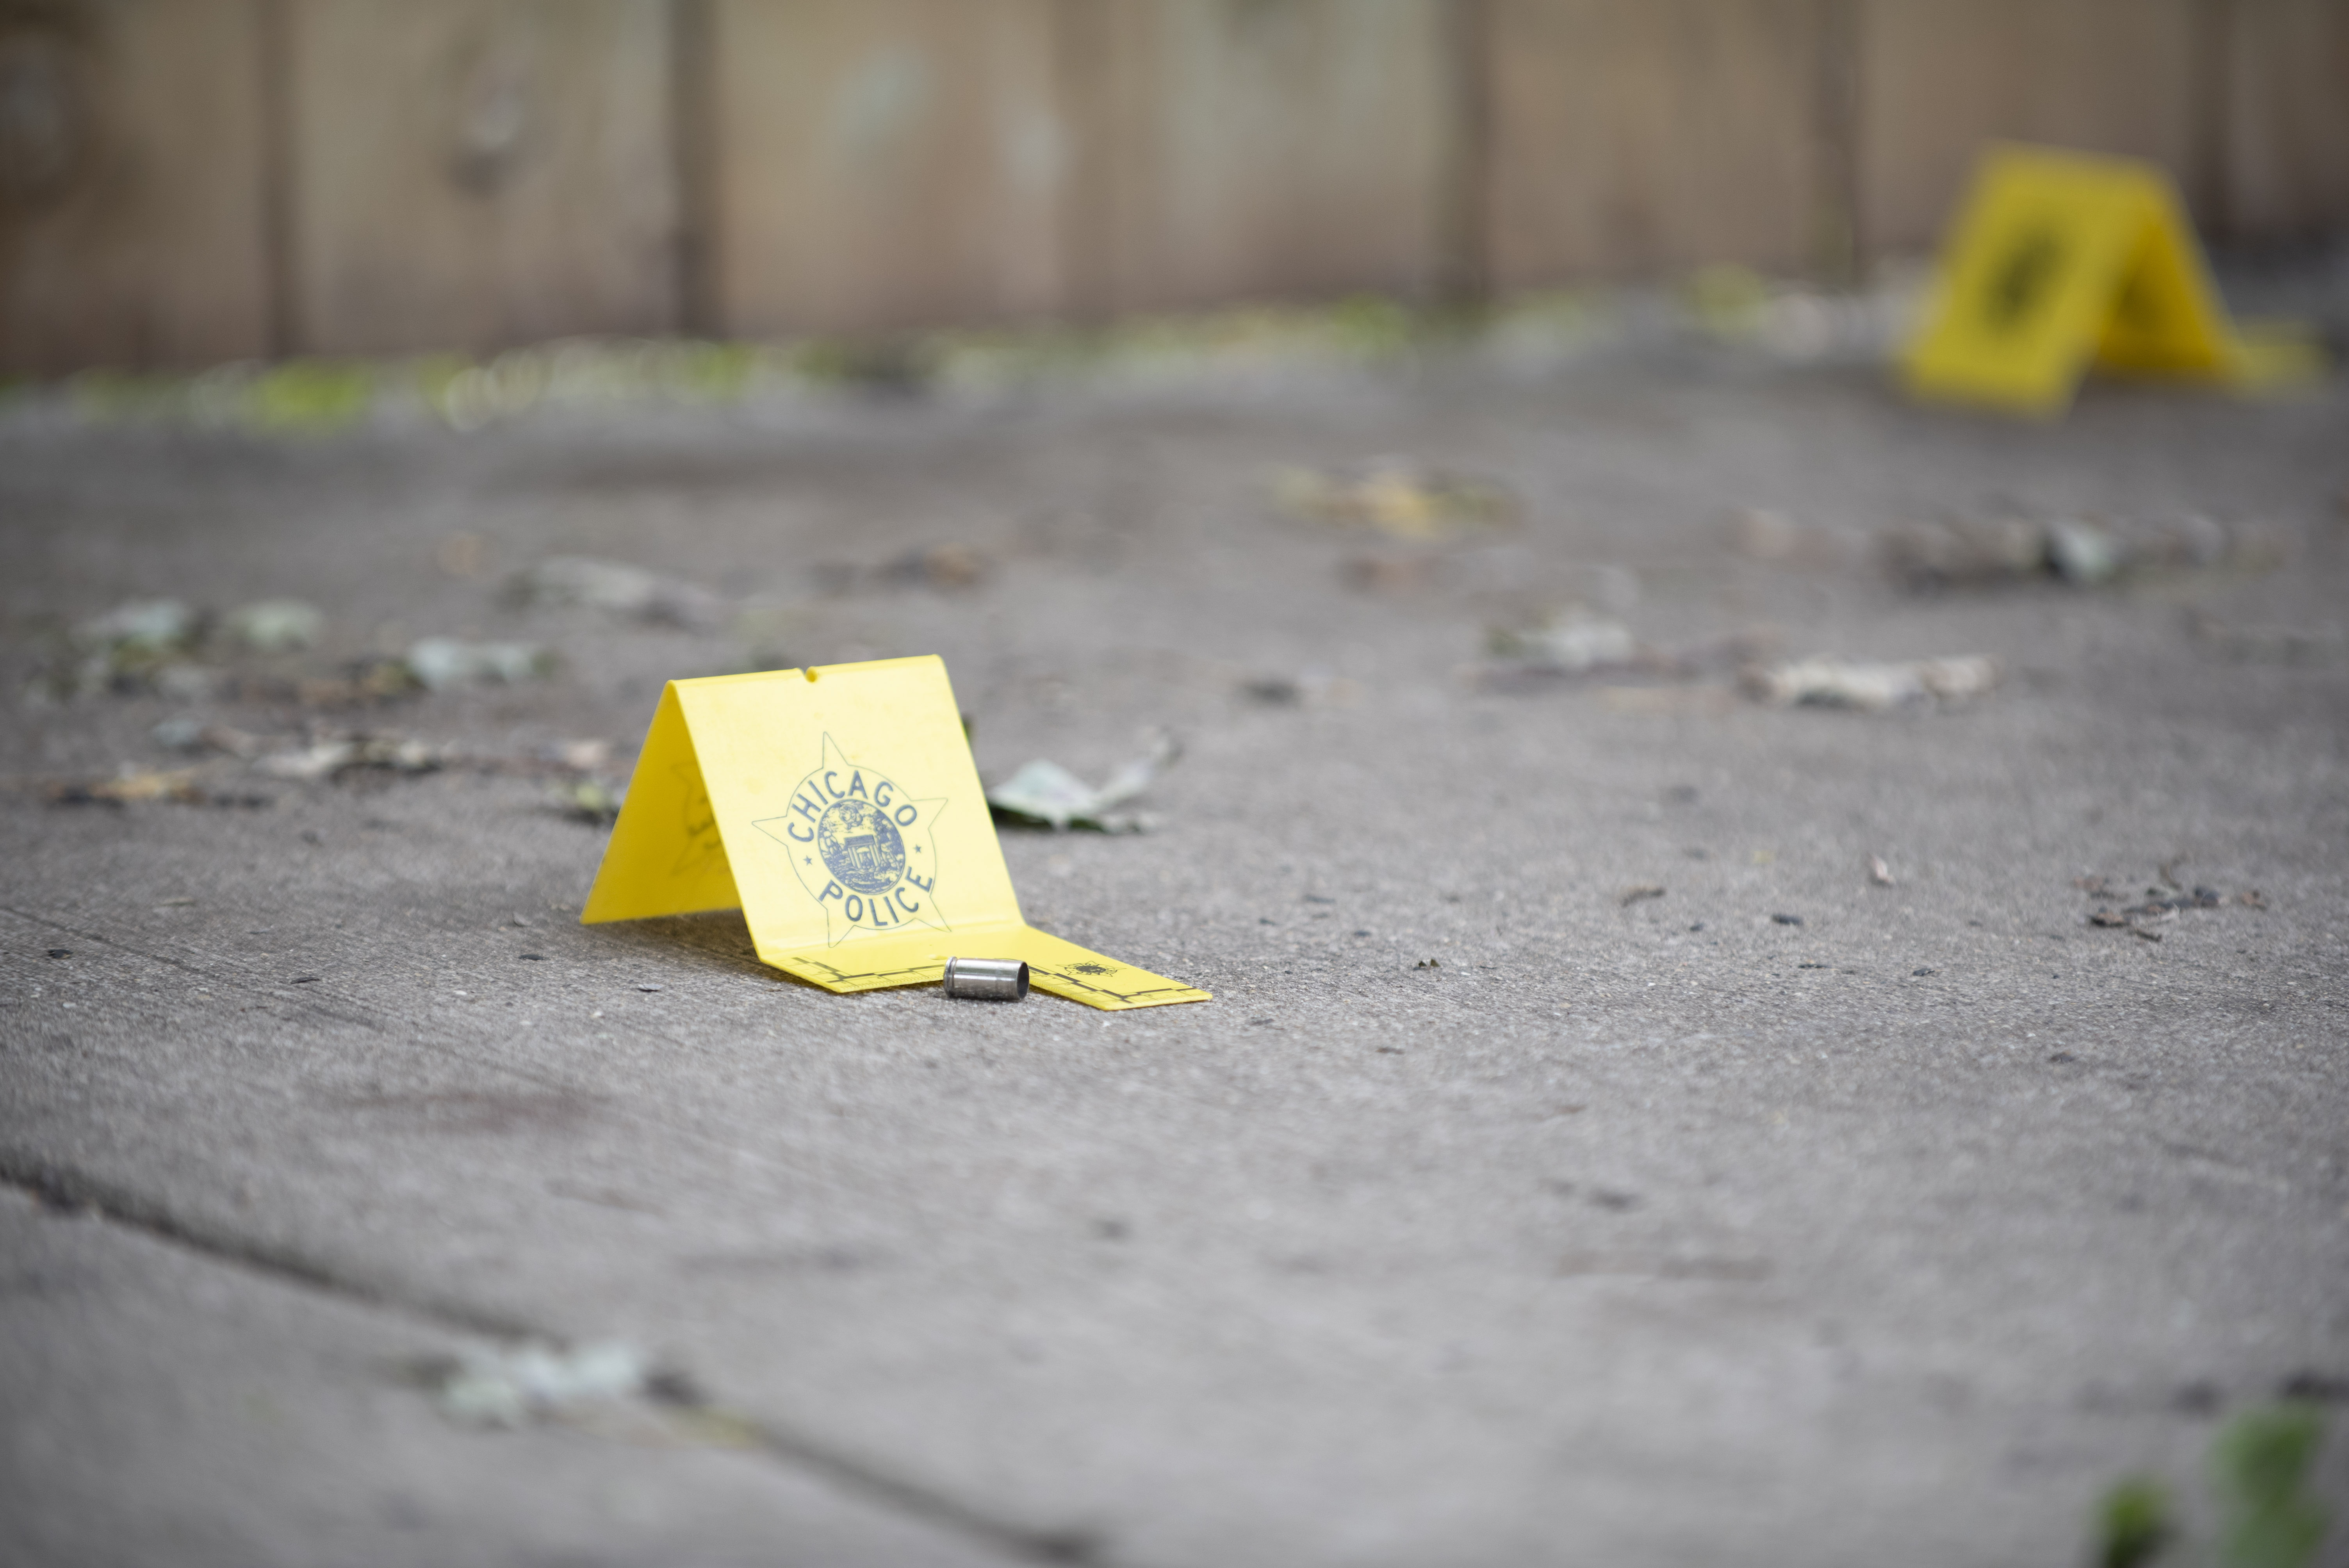 A man was shot dead Oct. 22, 2020, in Chatham.